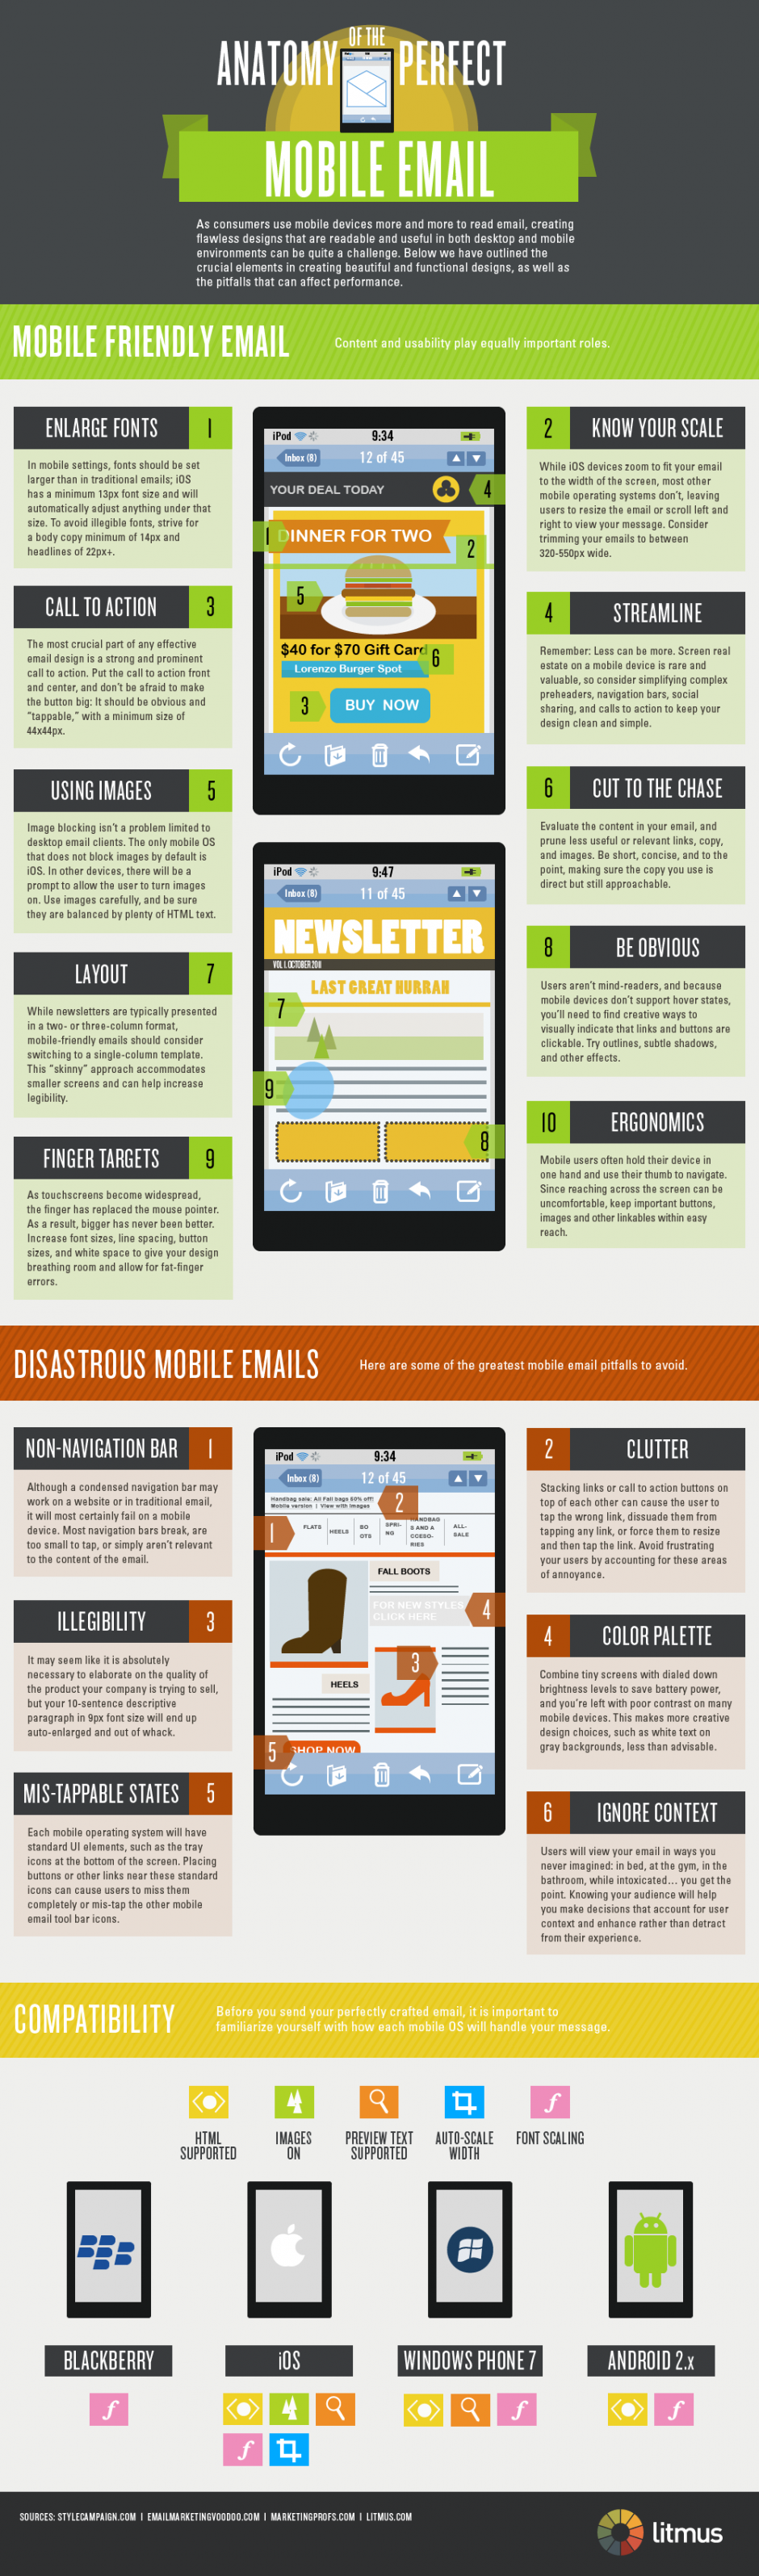 How to Send Emails by Phones